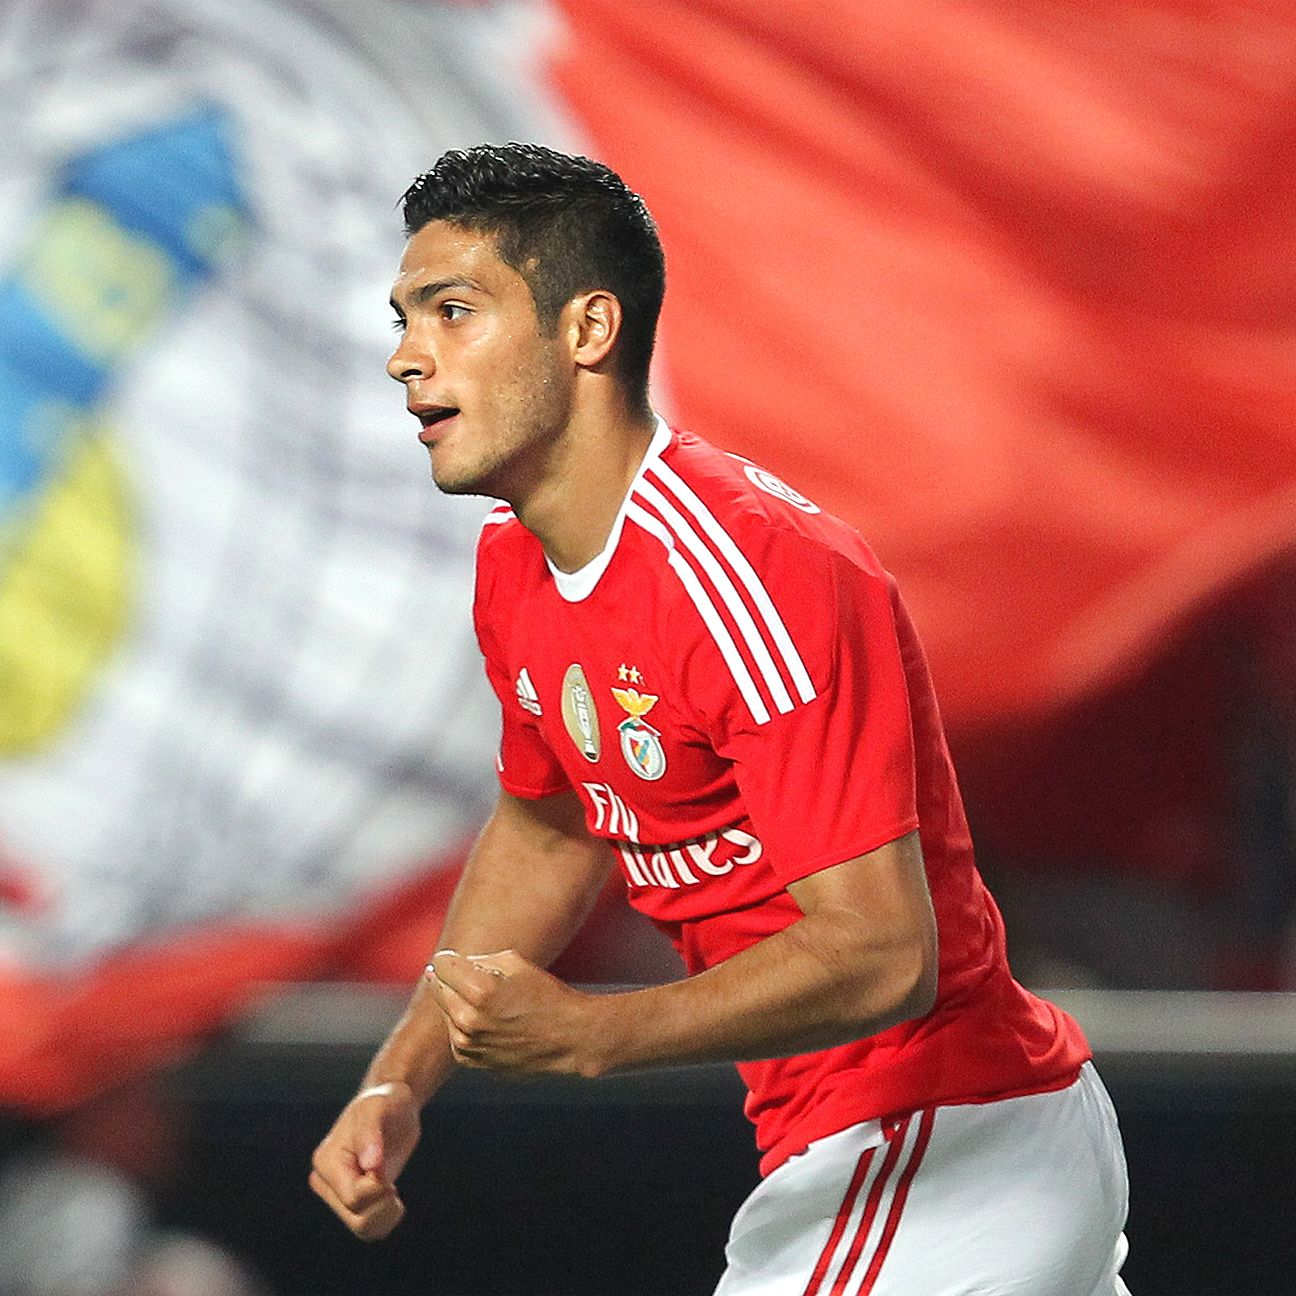 After a frustrating 2014-15 at Atletico Madrid, Raul Jimenez is off to a good start in 2015-16 with Benfica.